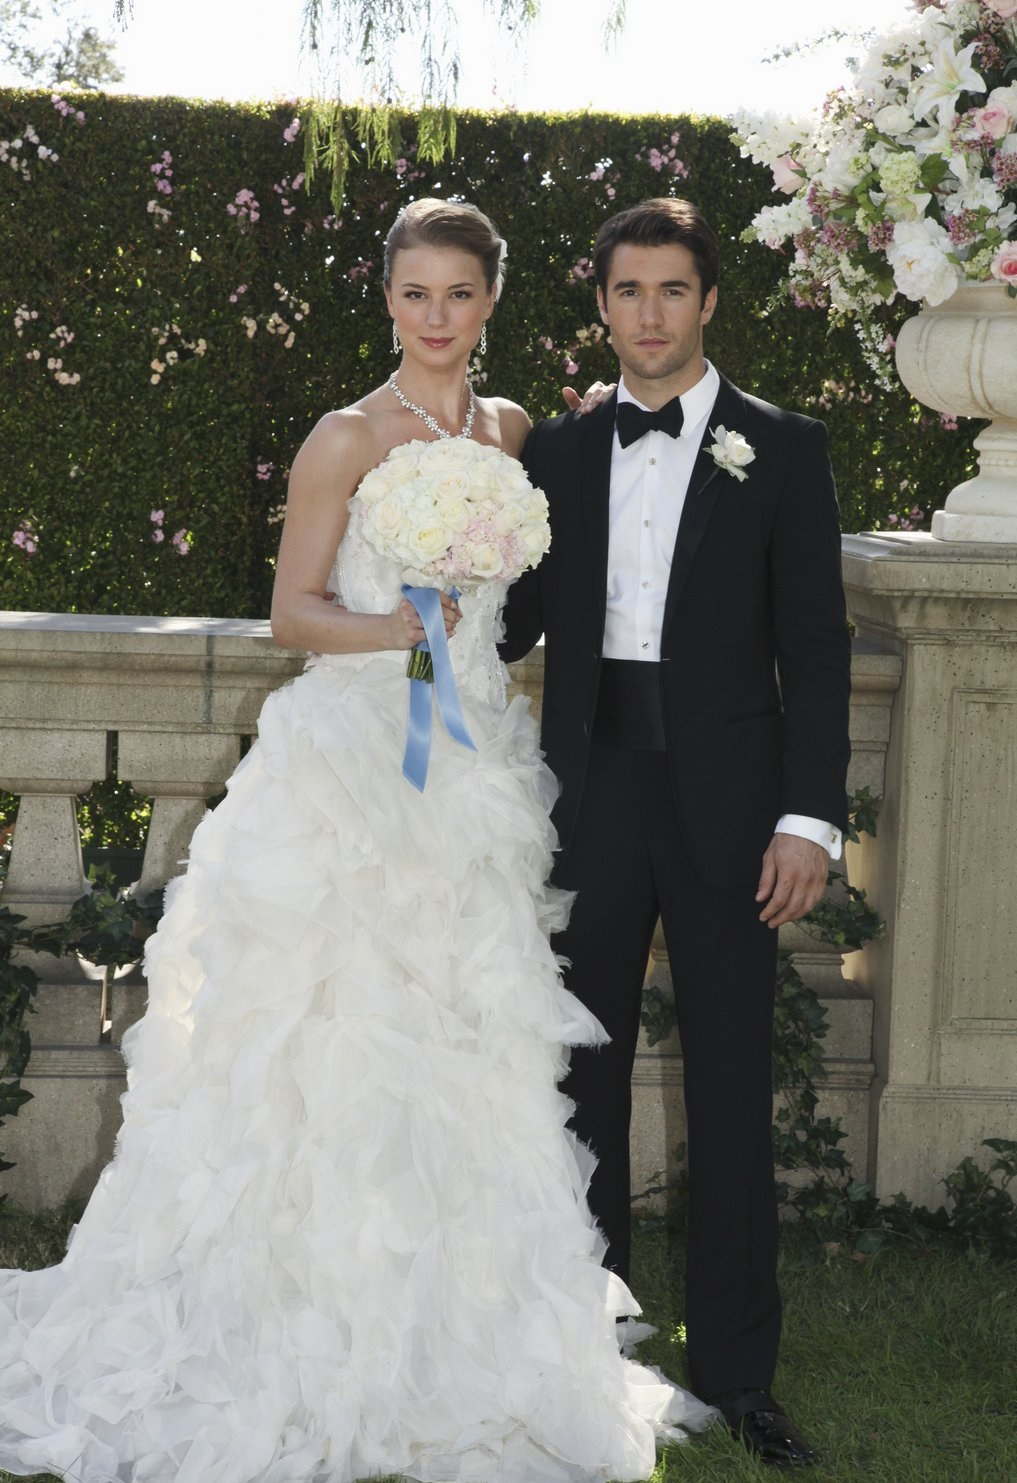 The Wedding Album! - Emily VanCamp & Josh Bowman Photo ...